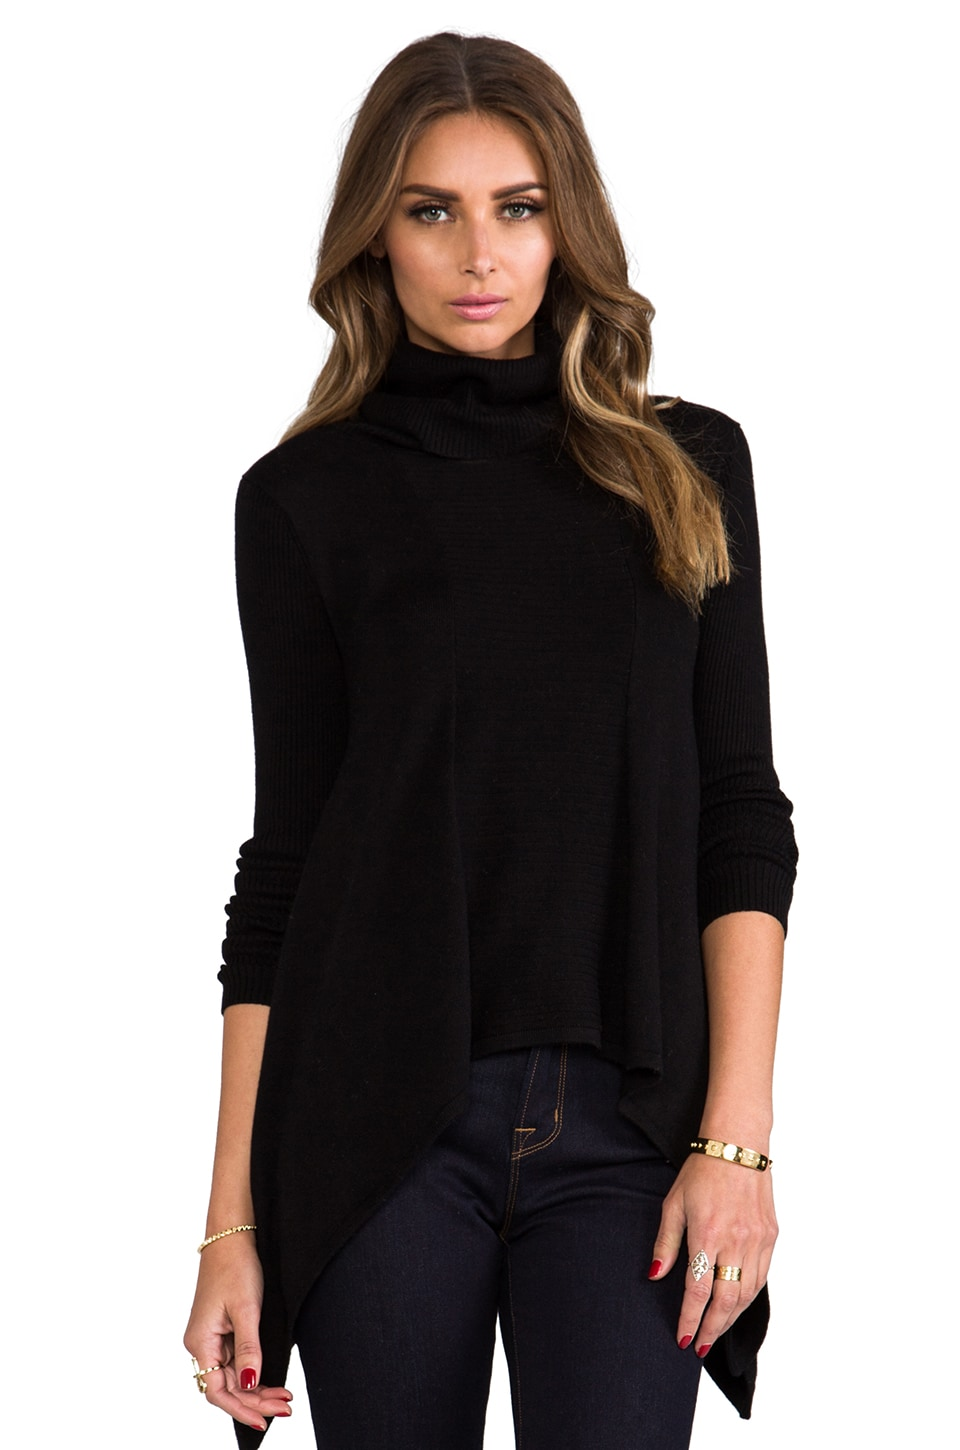 Vintageous Rachel Sweater in Black